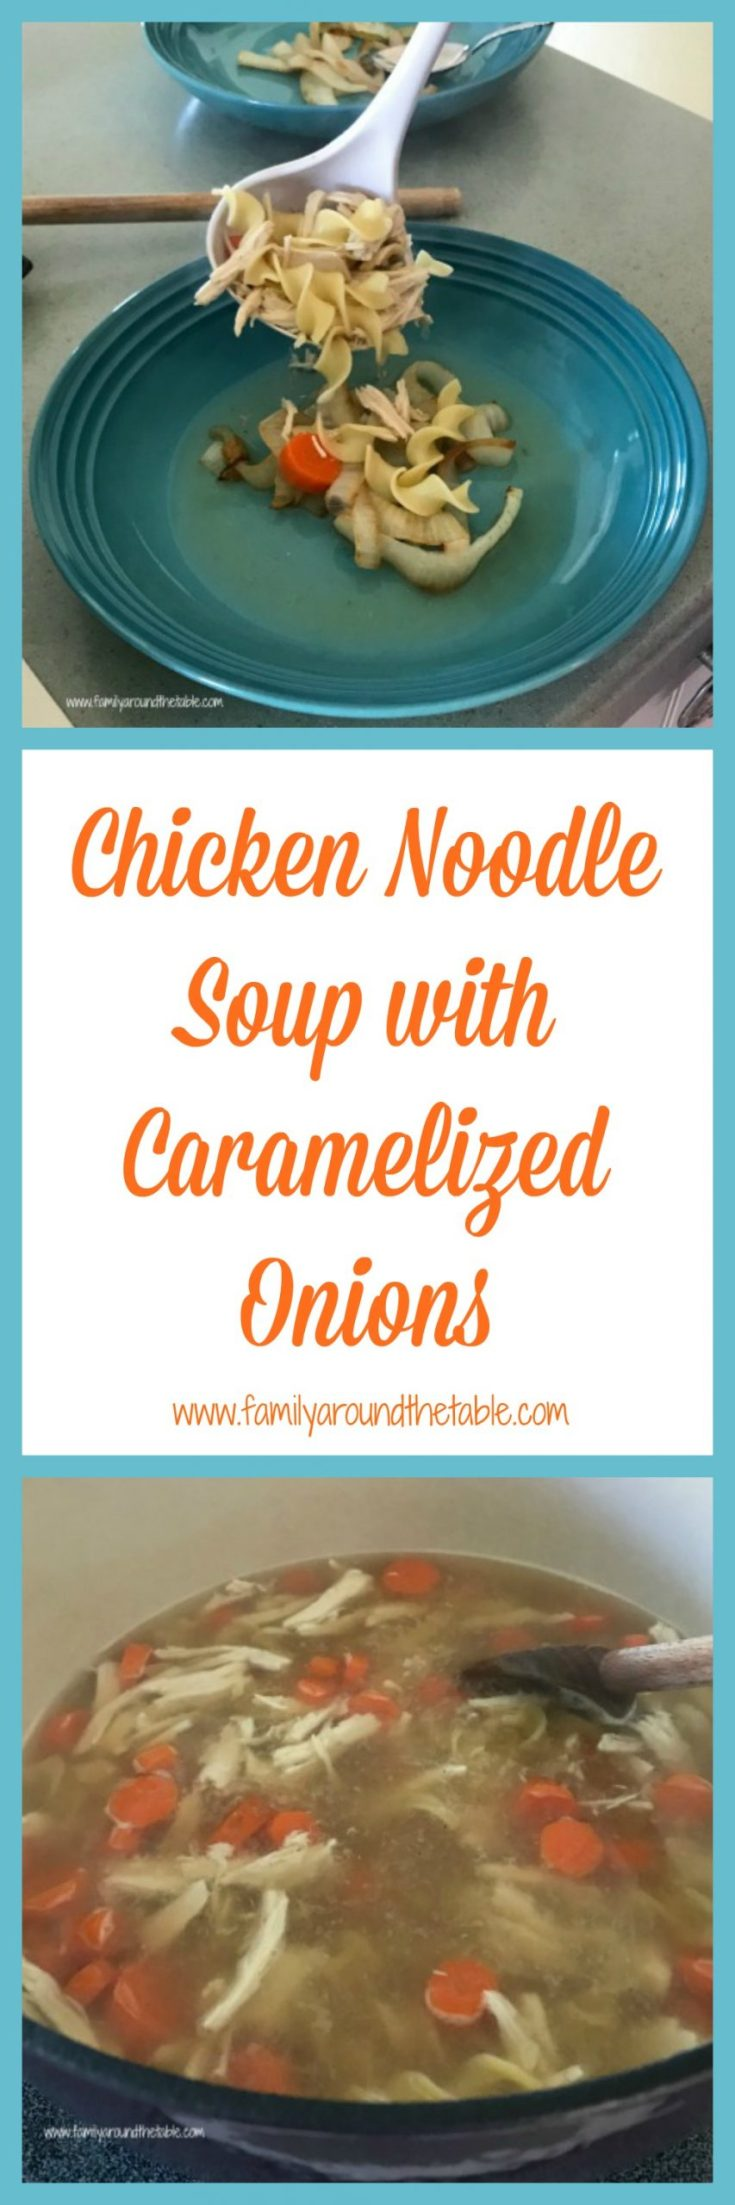 There is nothing better than chicken noodle soup on a cold day or when you're under the weather.